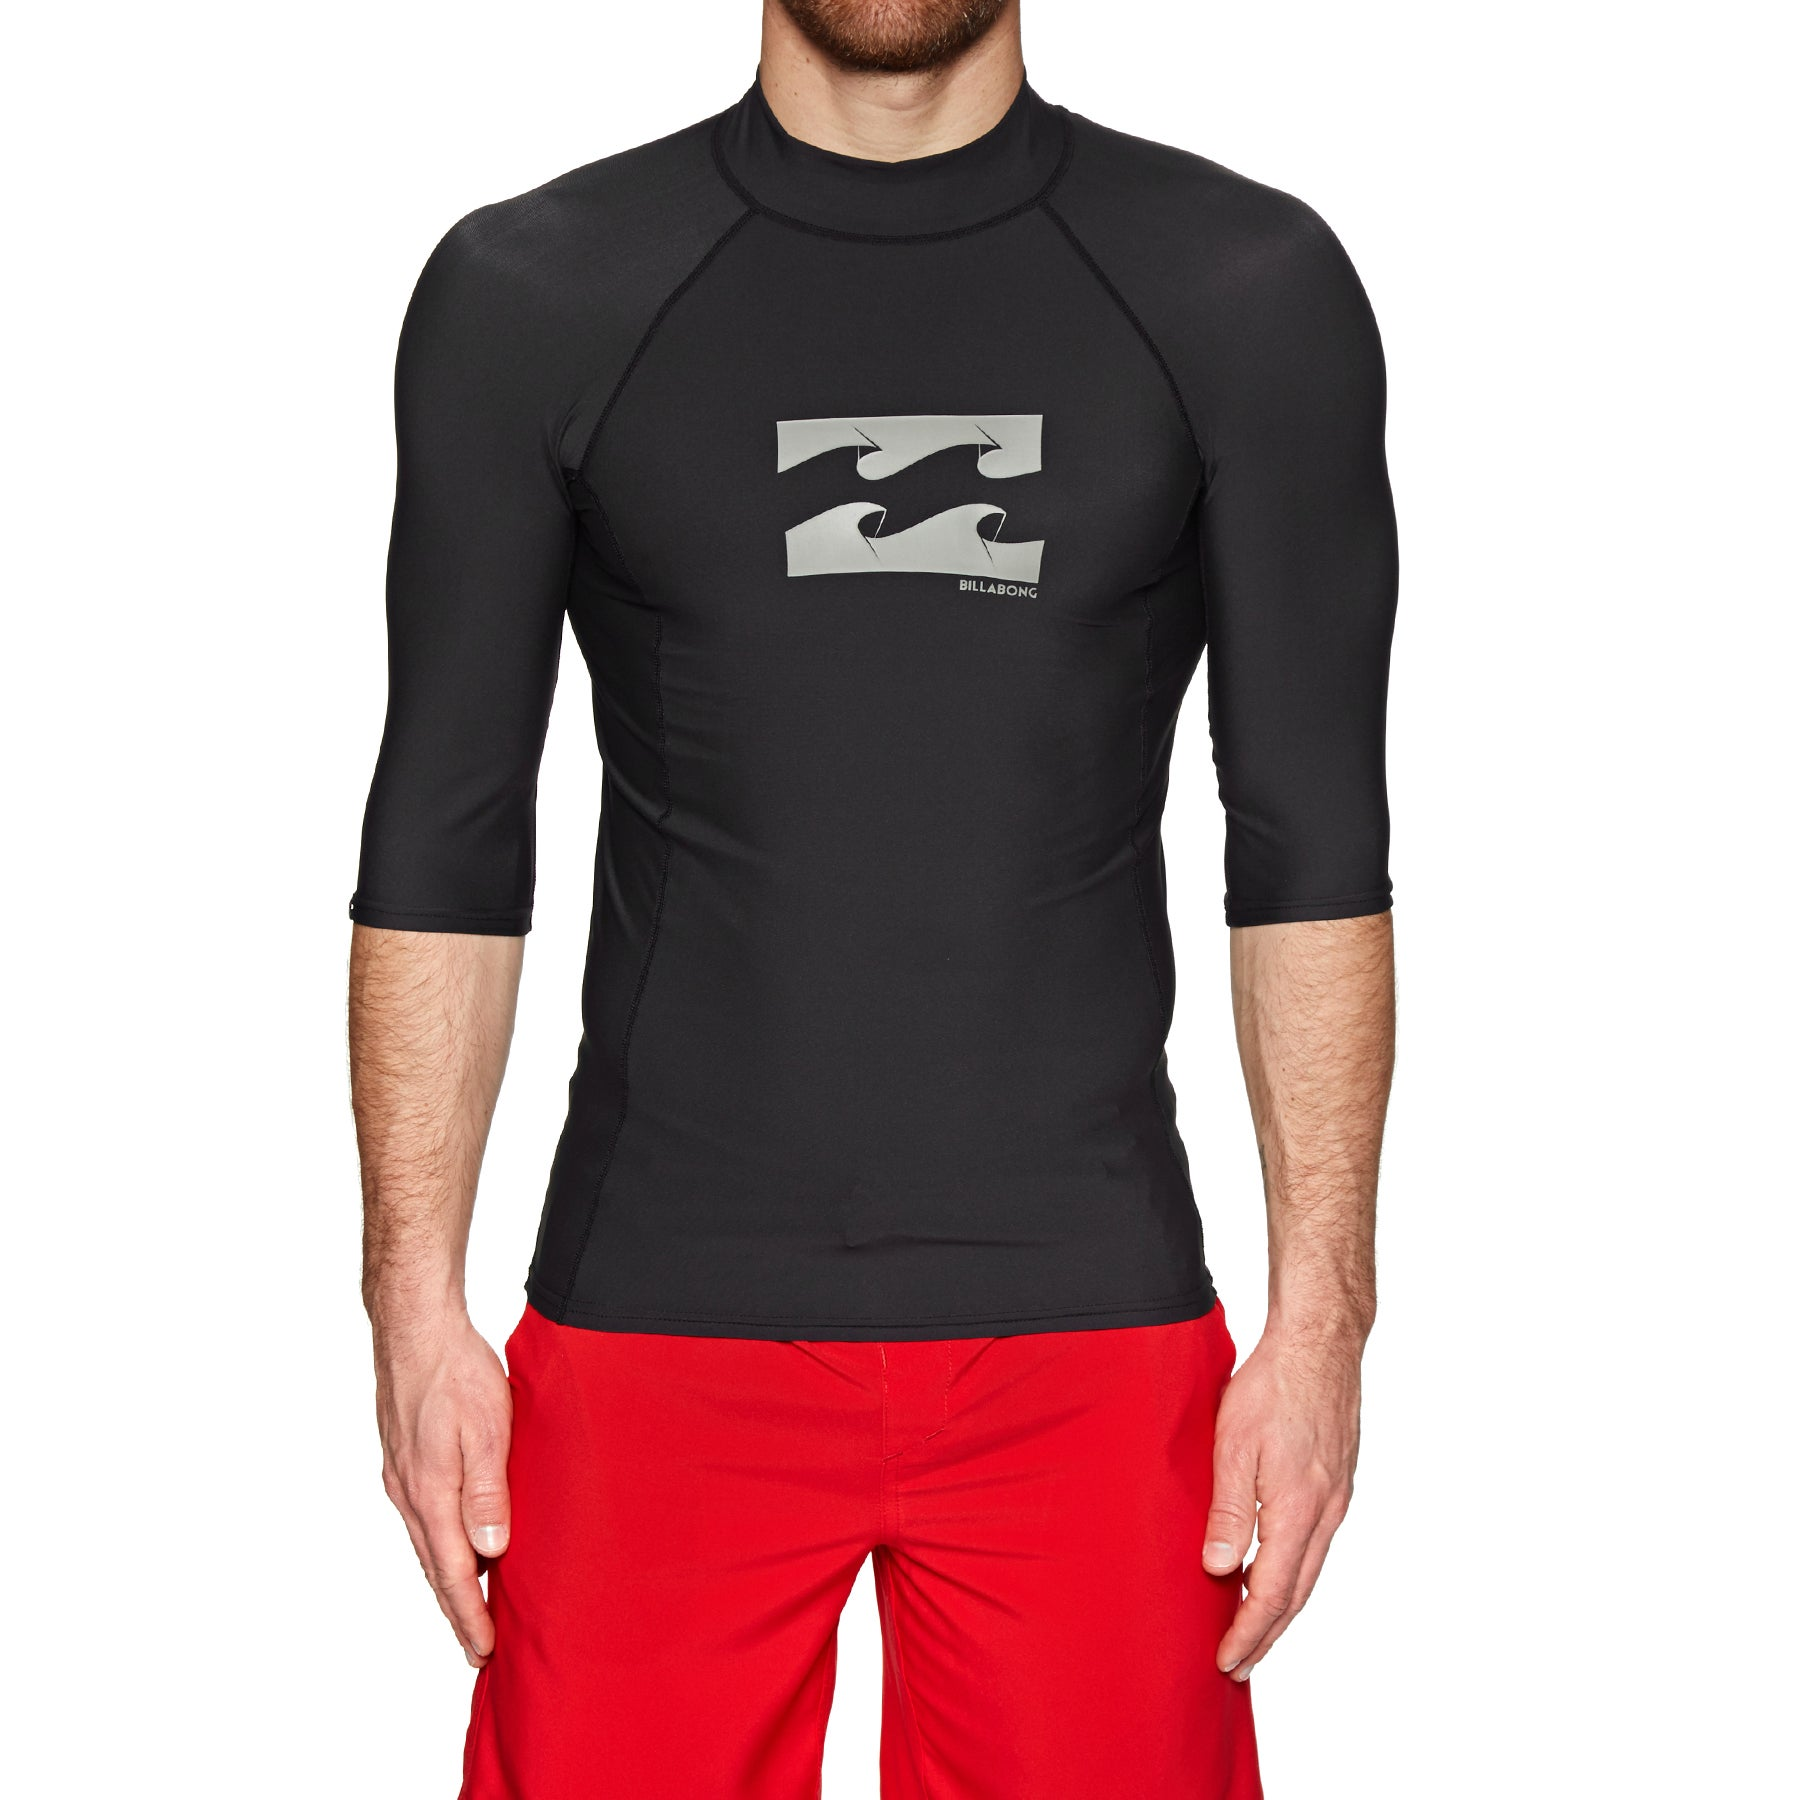 Billabong Advance Short Sleeve Rash Vest - Black